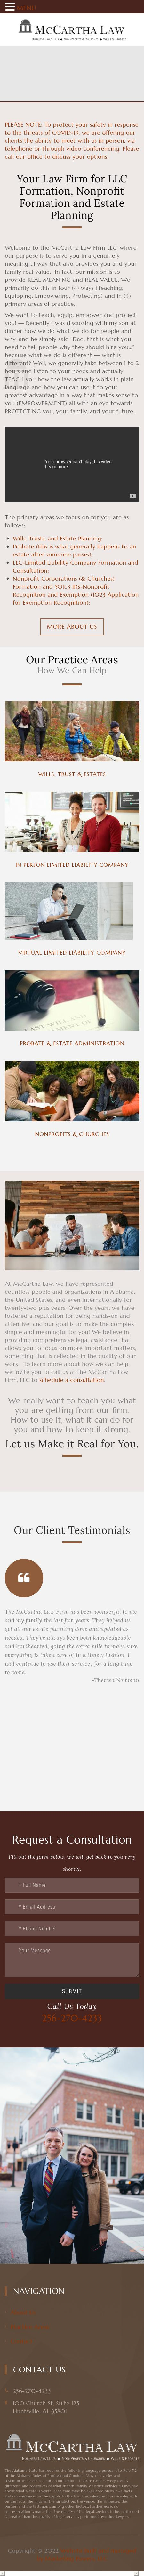 McCartha Law Firm, LLC - Huntsville AL Lawyers